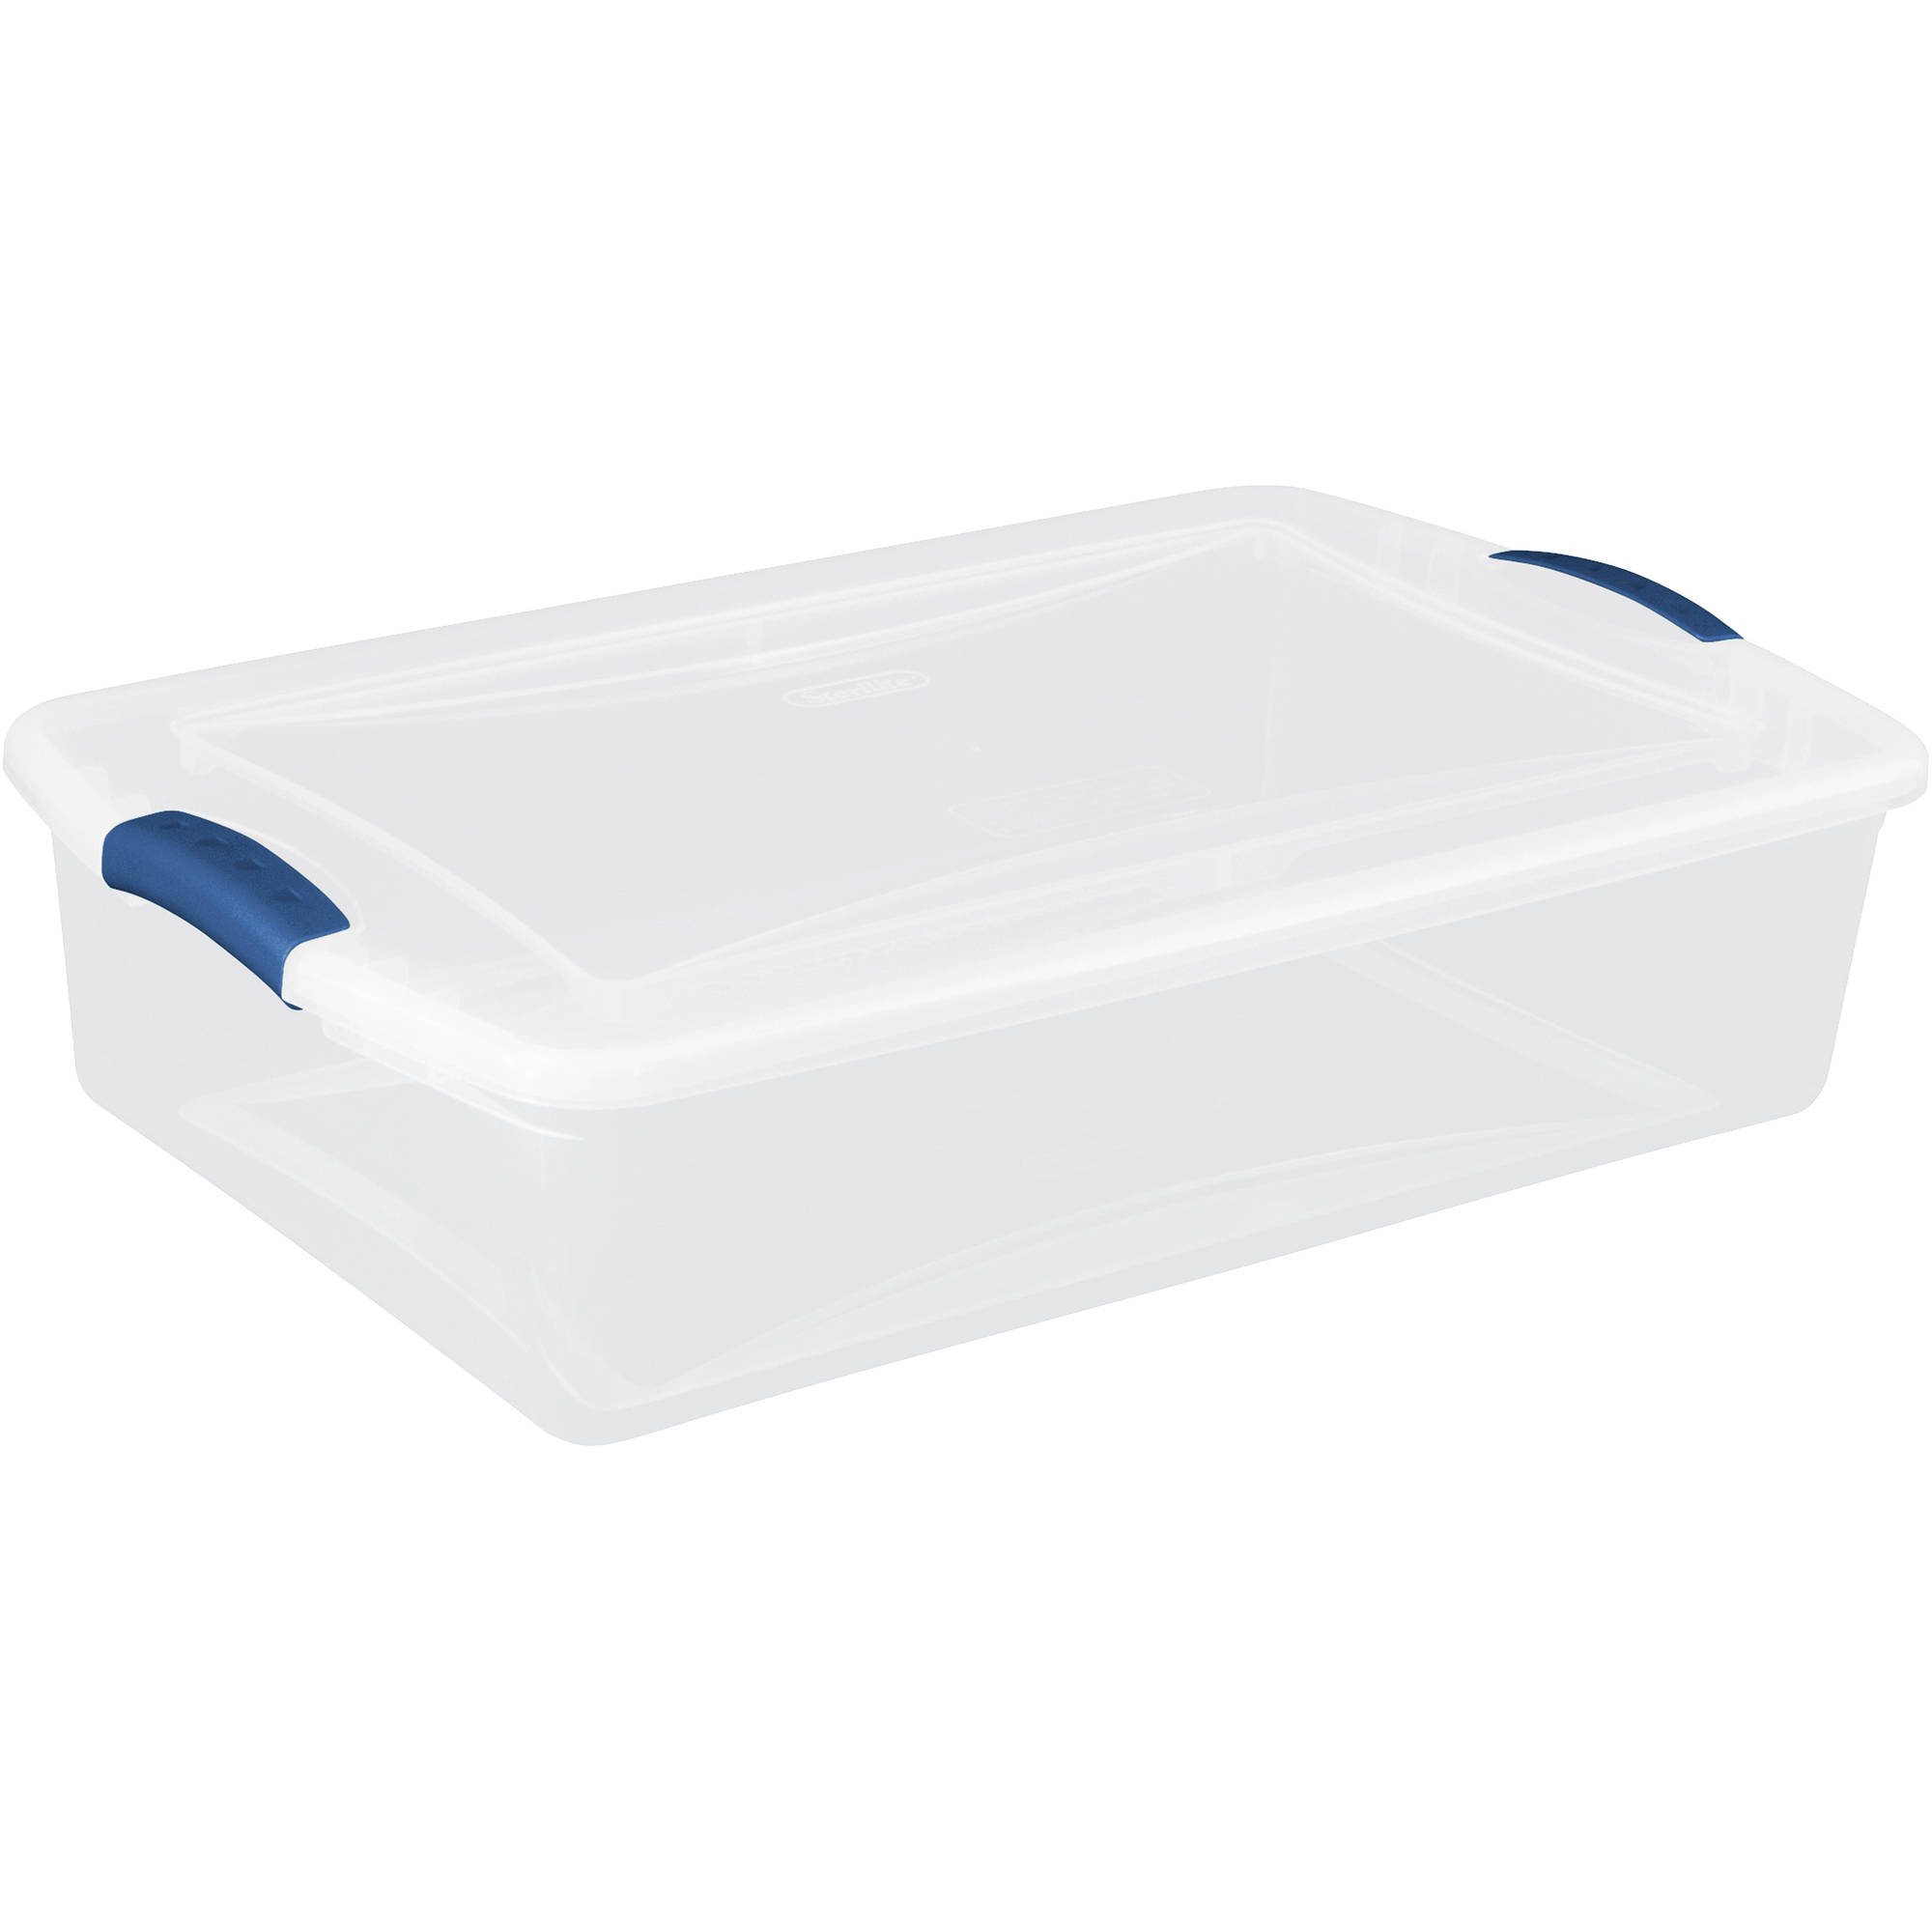 Sterilite 34 Quart Latch Box- Blue Eclipse, Set of 6